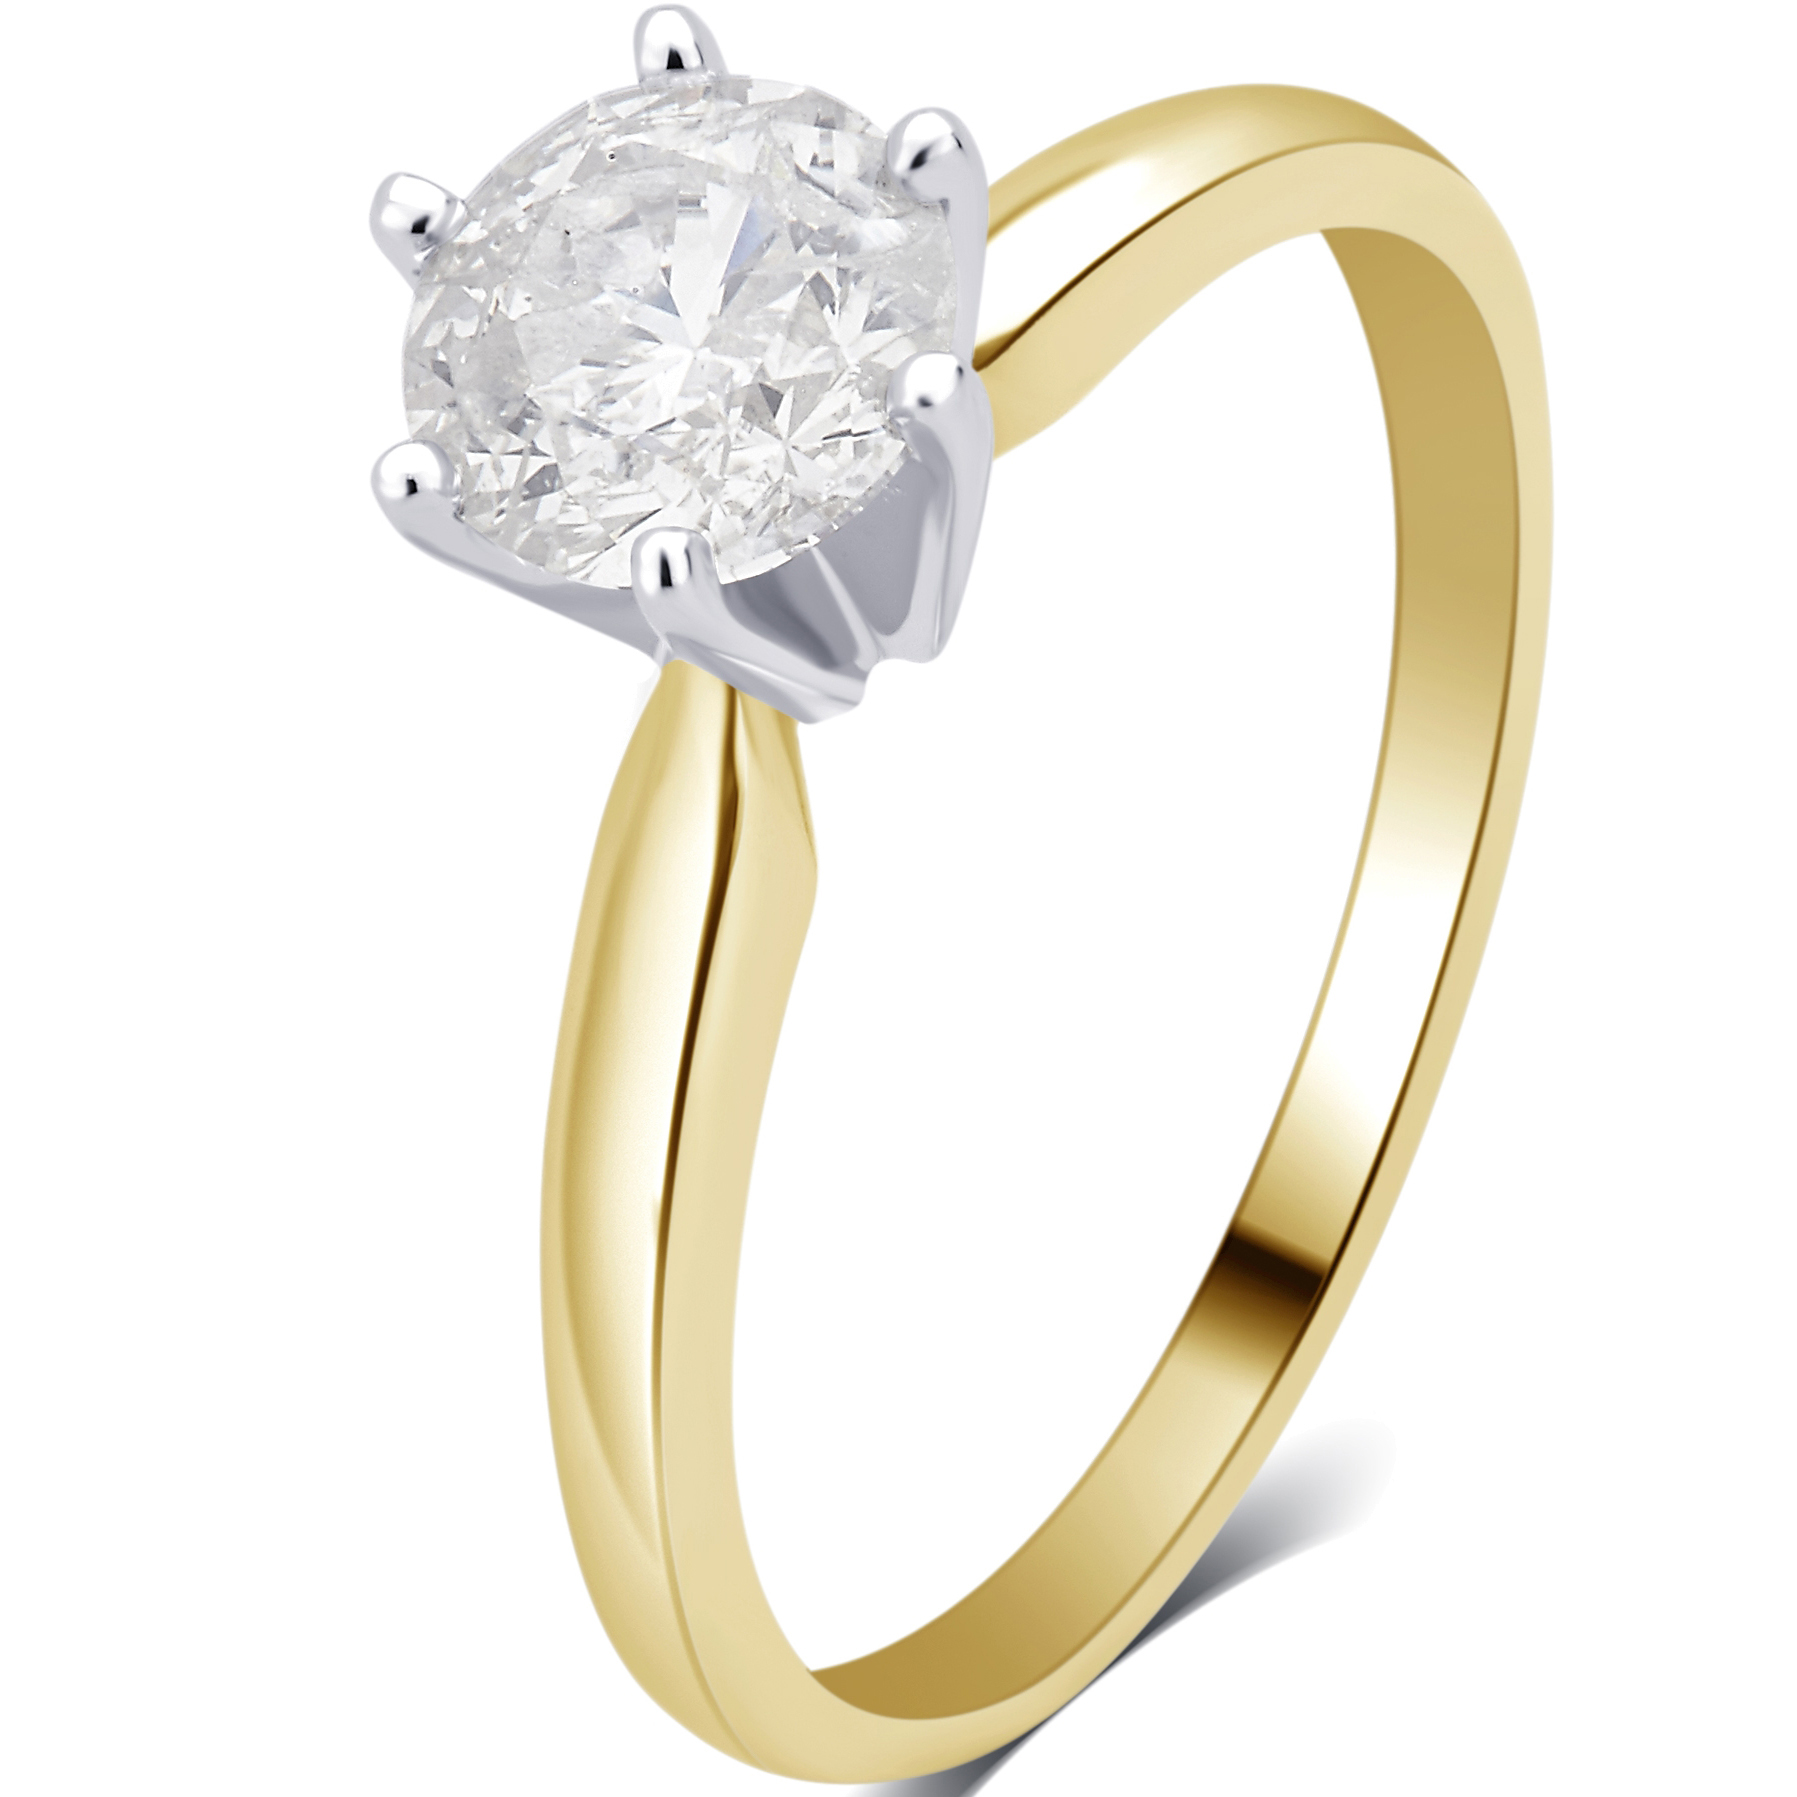 3 4 Carat T.W. Round Diamond 14K Yellow Gold Solitaire Engagement Ring by Generic